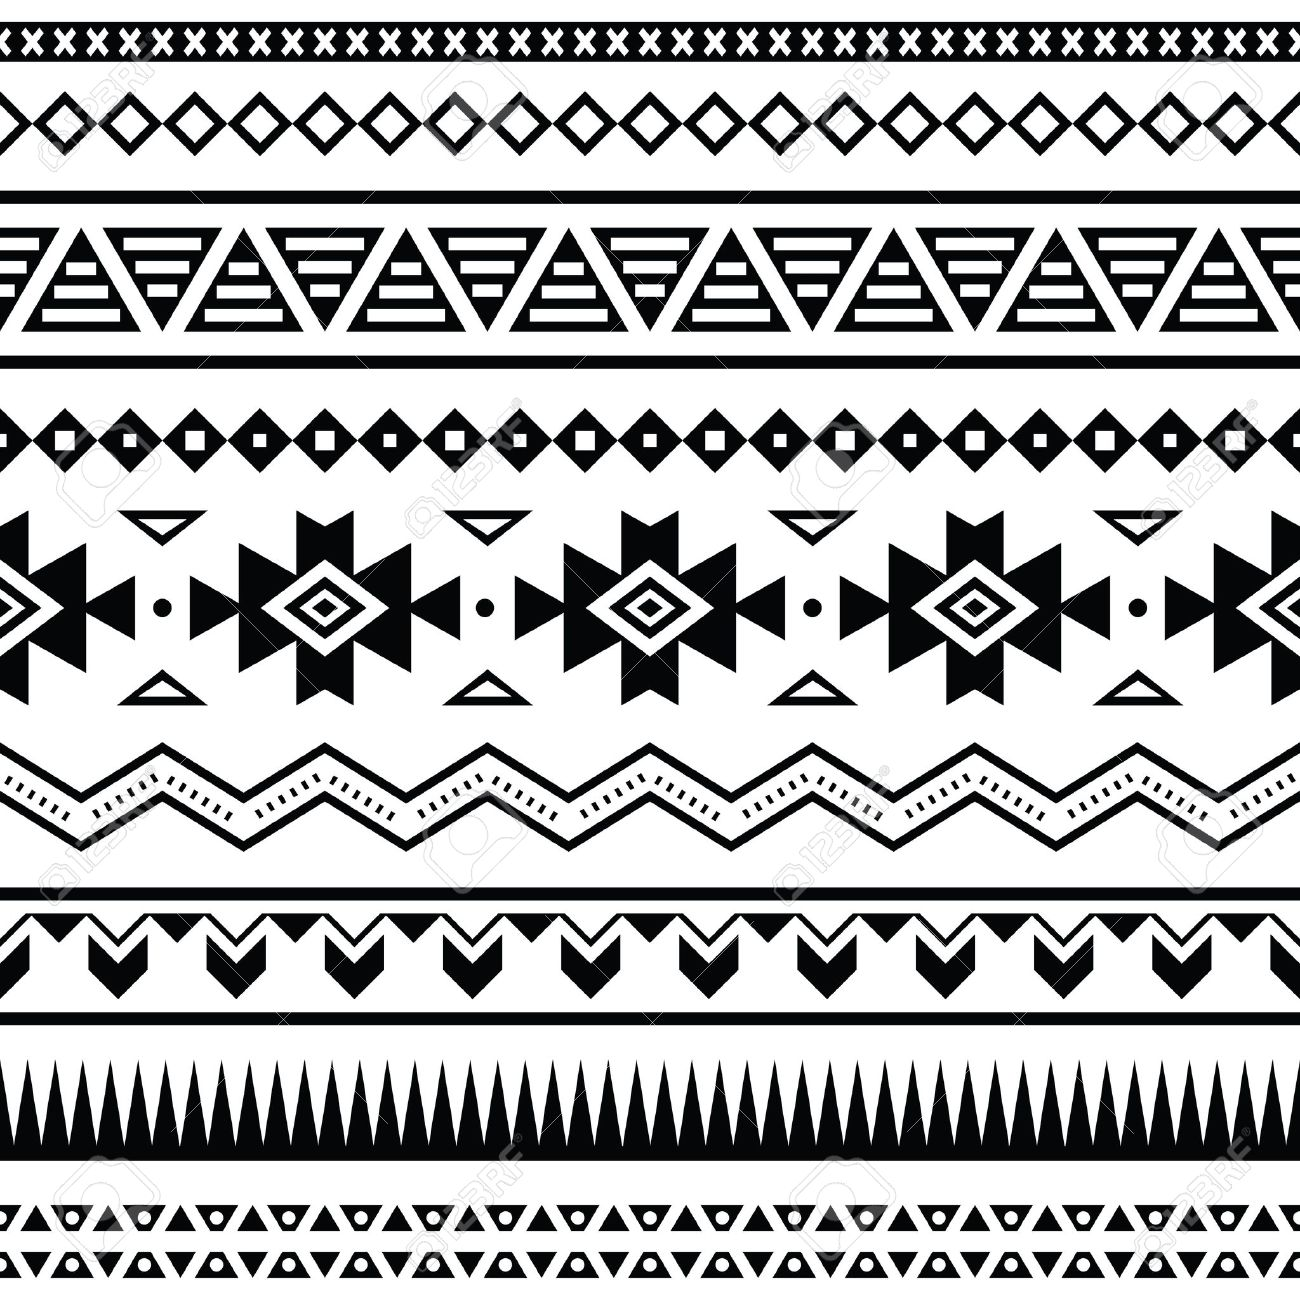 Background geometric mexican patterns seamless vector zigzag maya - Aztec Mexican Seamless Pattern Stock Vector 21989673